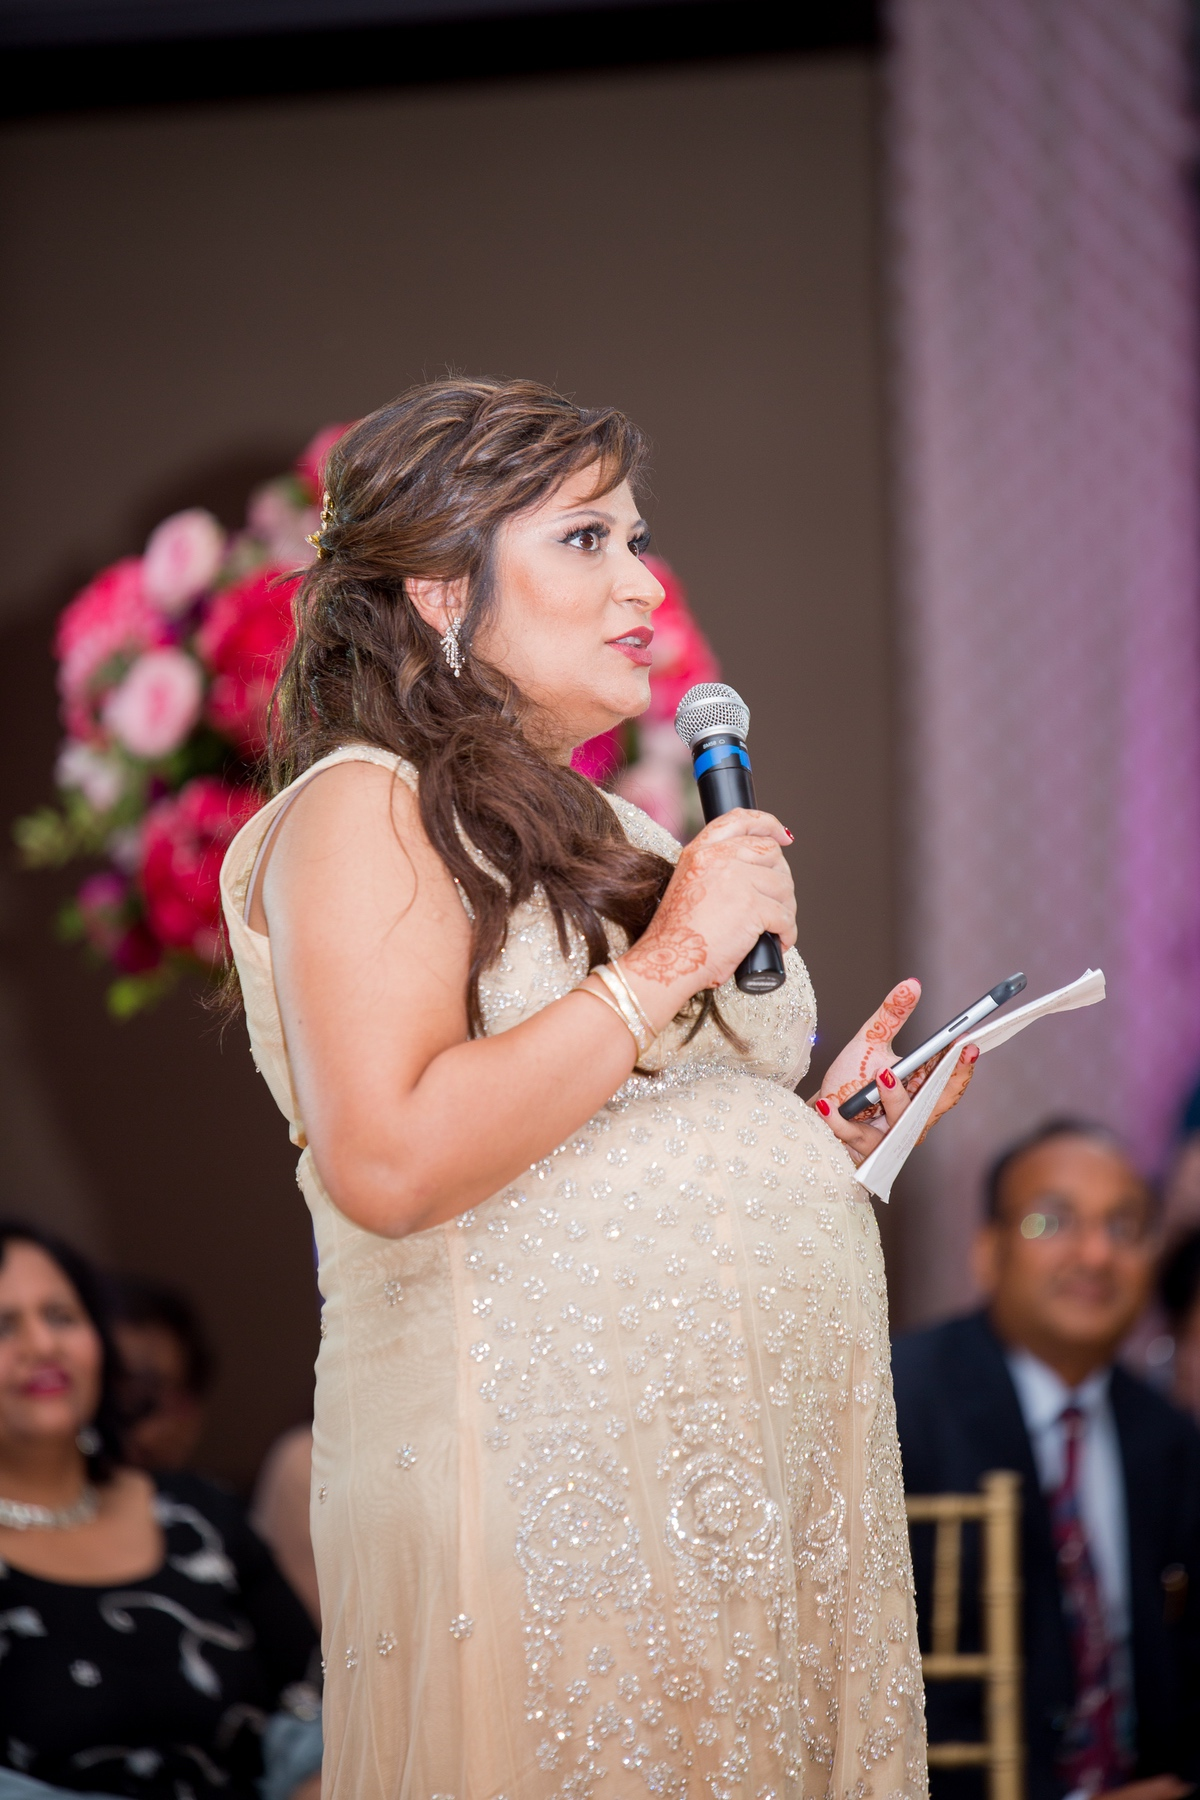 Le Cape Weddings - South Asian Wedding - Chicago Wedding Photographer P&V-78-2.jpg